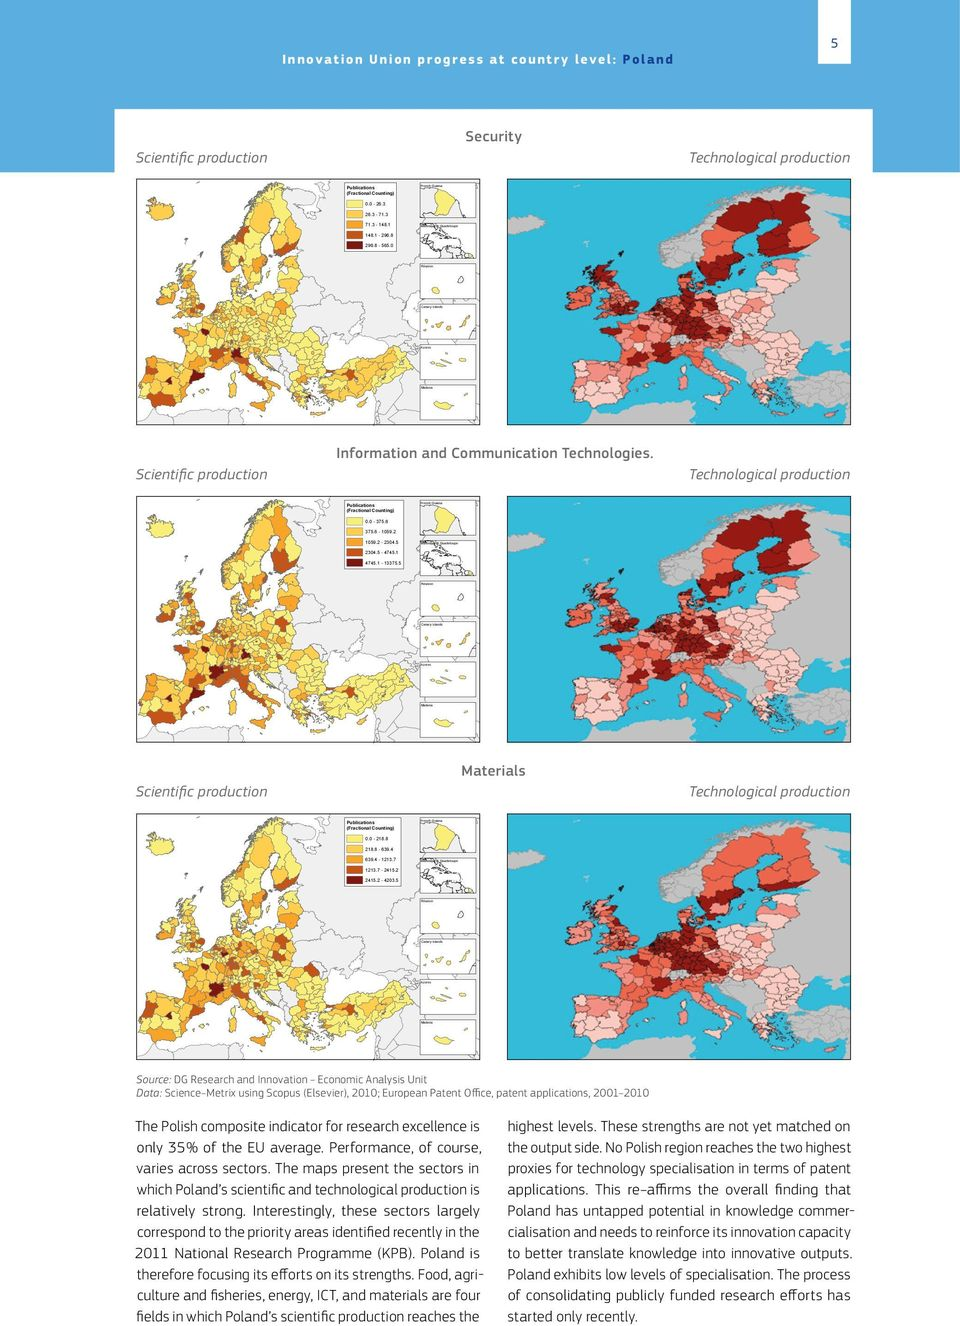 0 Réunion Canary Islands Azores Madeira Source: Compiled by Science-Metrix using data from Scopus (Elsevier) 0 250 500 1,000 1,500 Kilometers 2,000 Information and Communication Technologies.